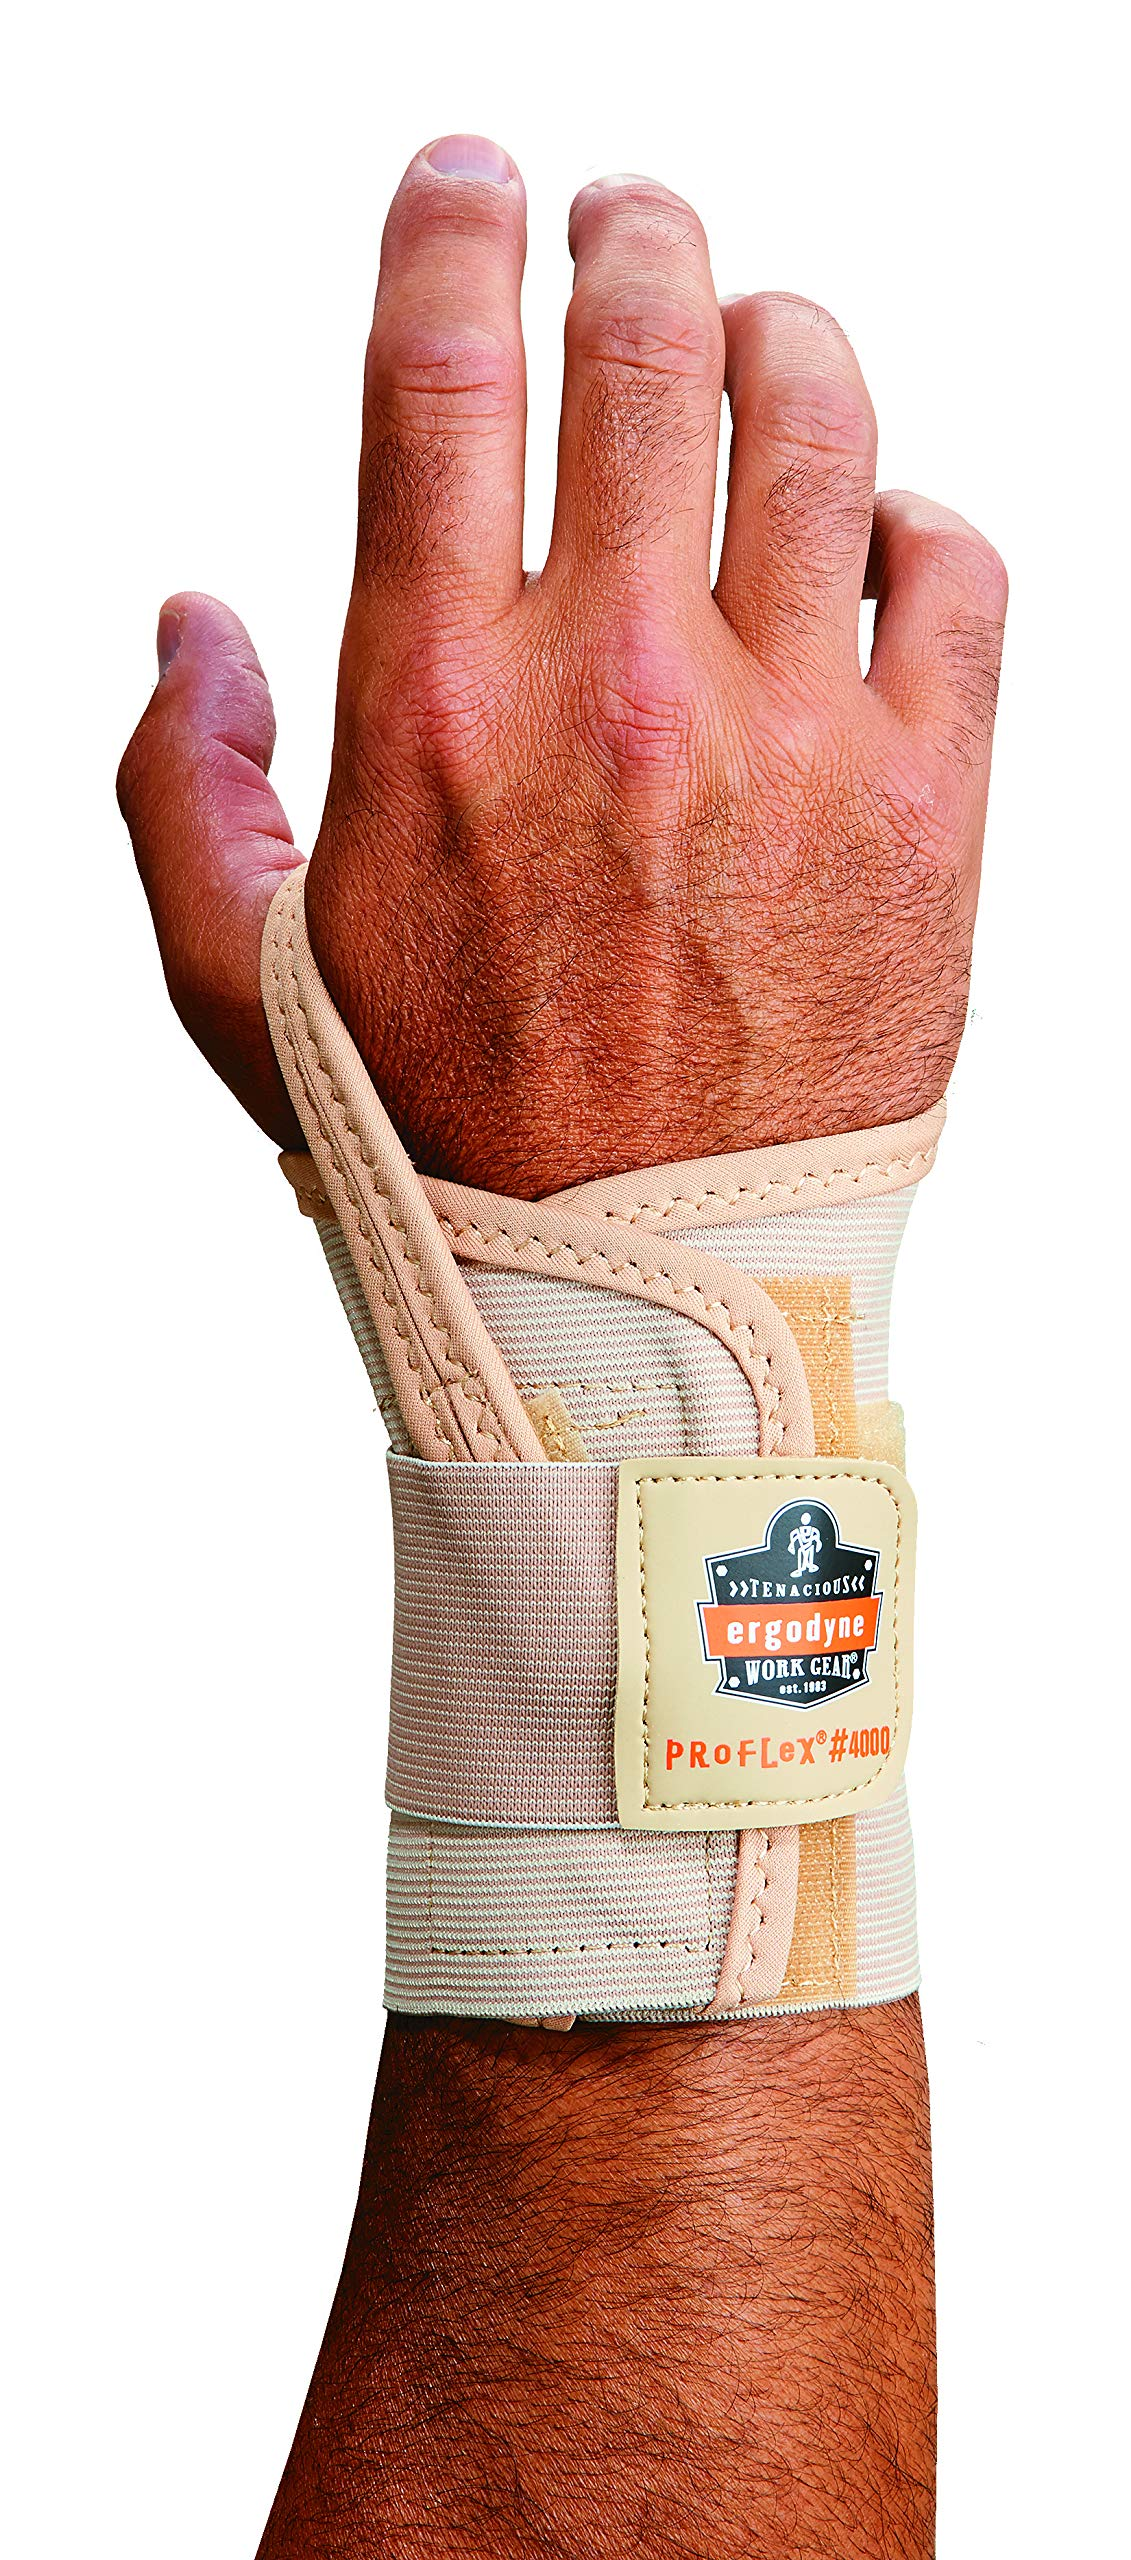 Ergodyne ProFlex 4000 Single Strap Wrist Support, Tan - Small, Left Hand